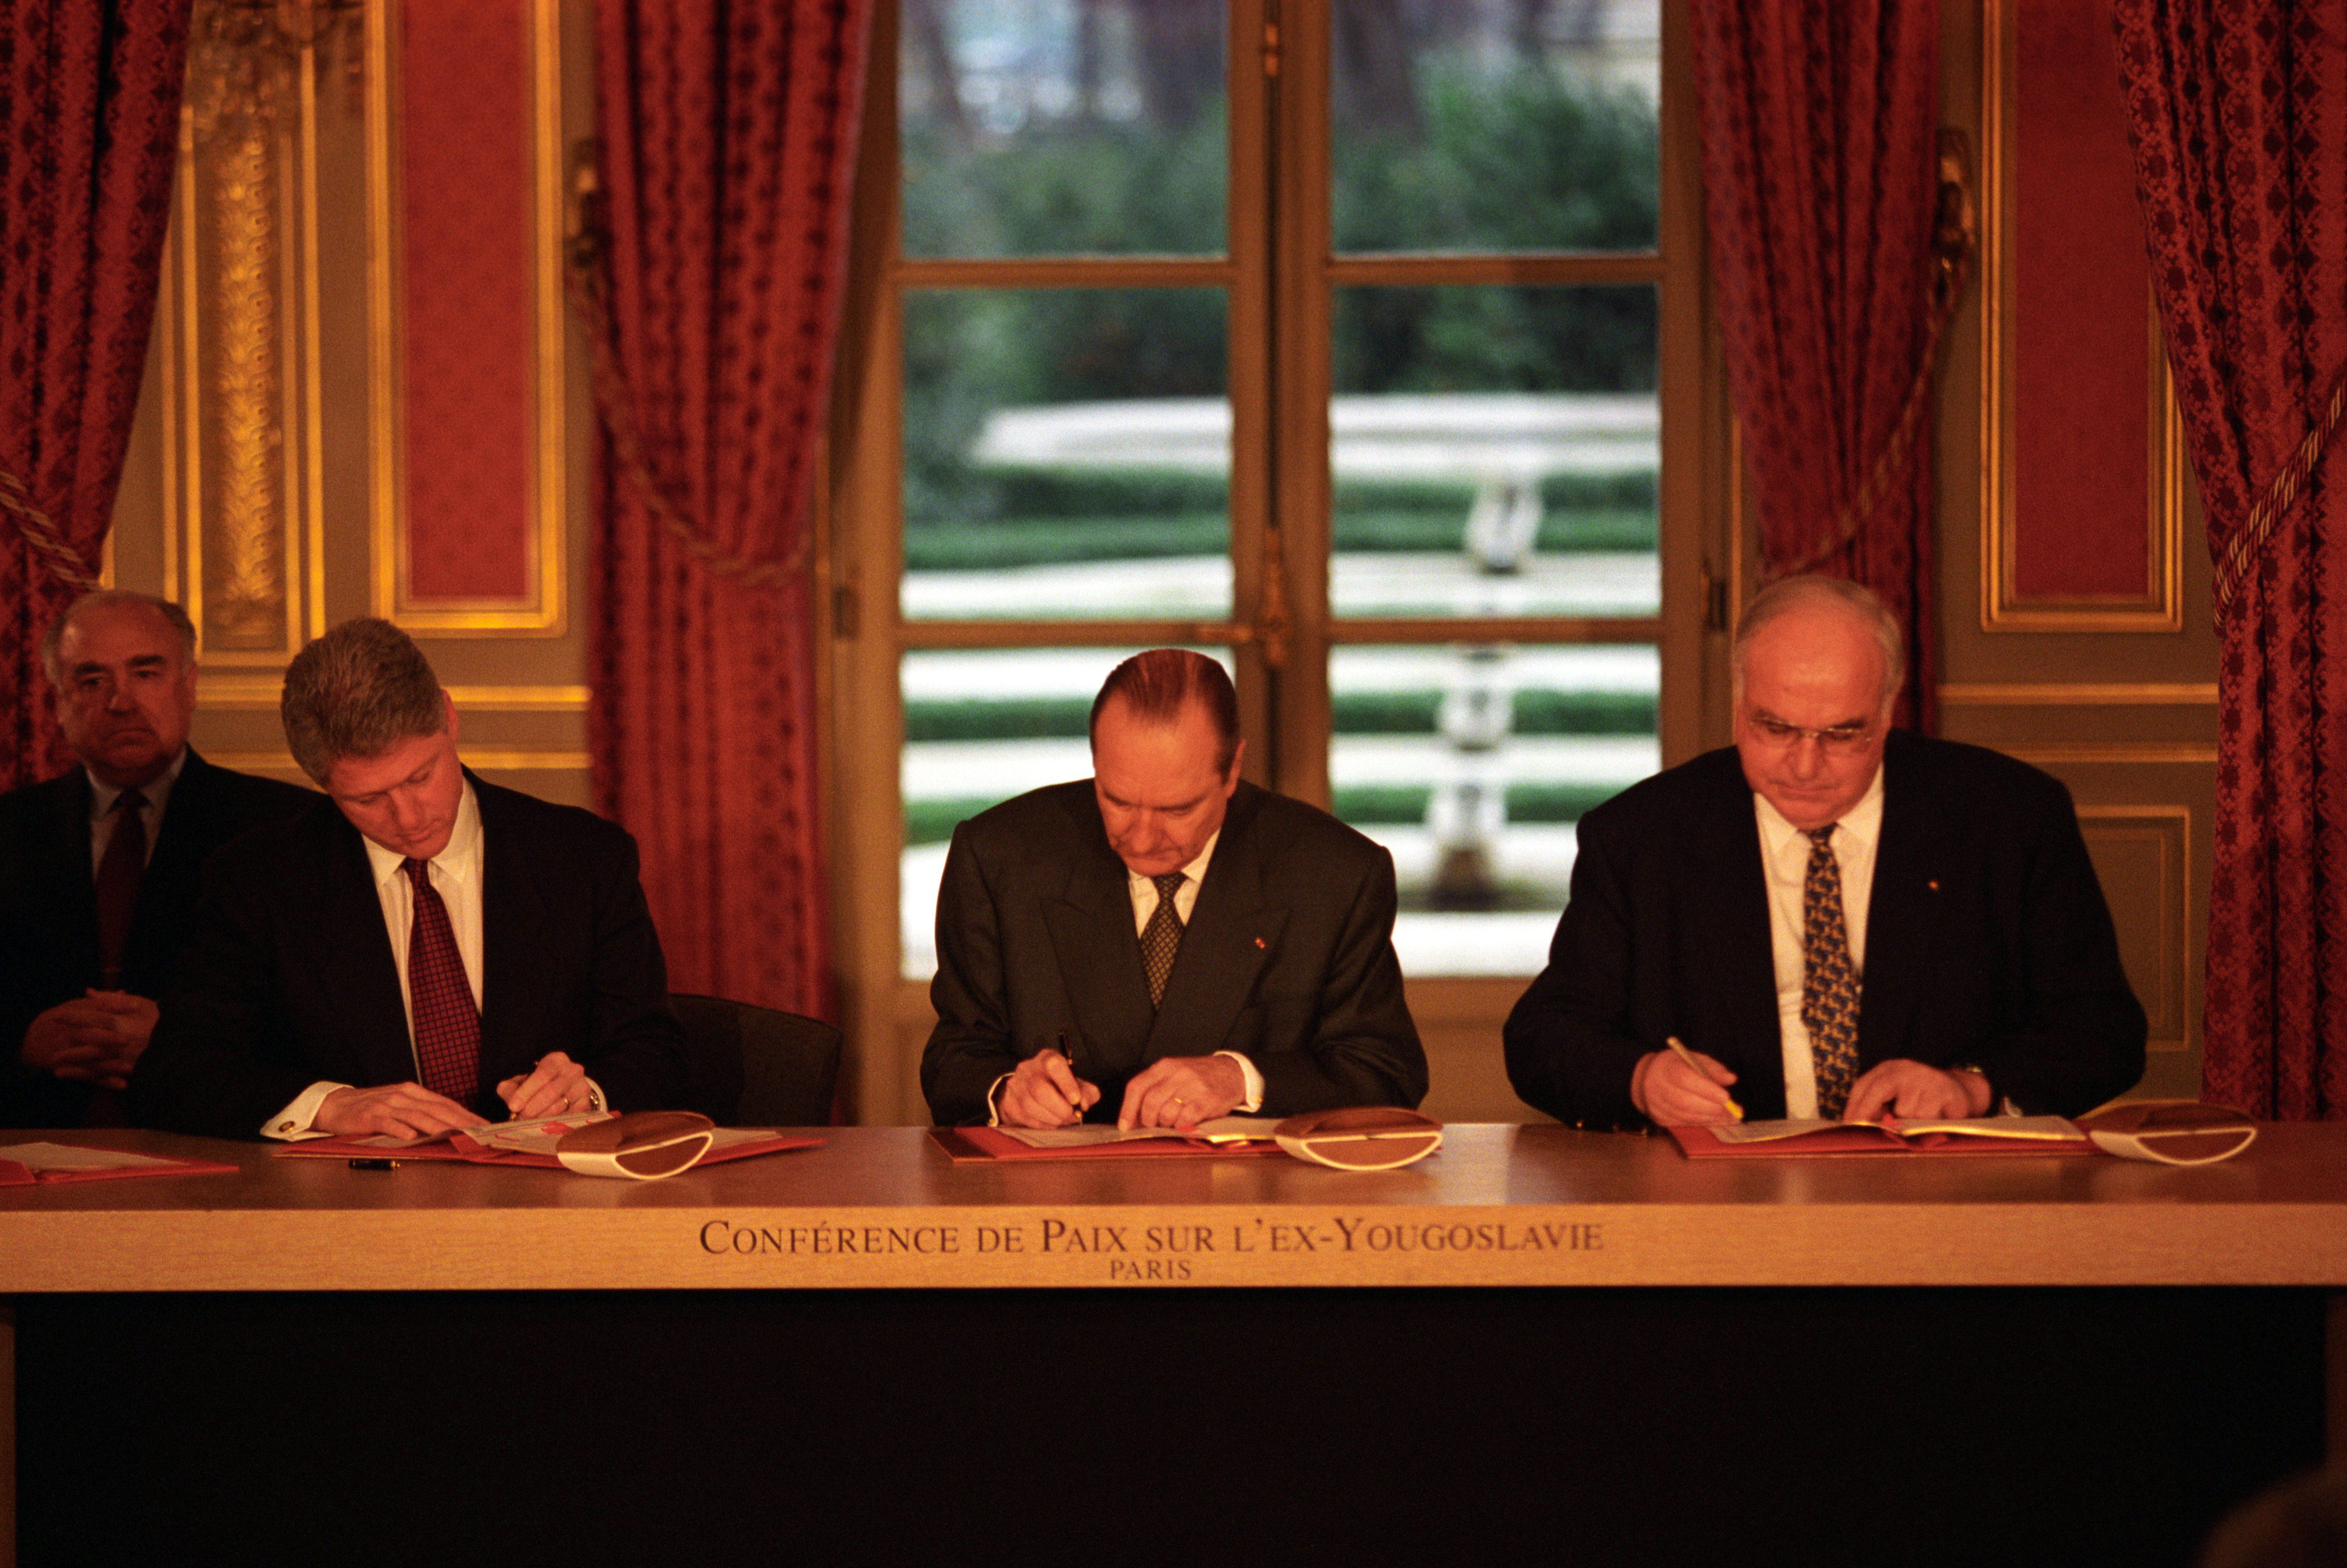 Filepresident Clinton Jacques Chirac And Helmut Kohl Sign The